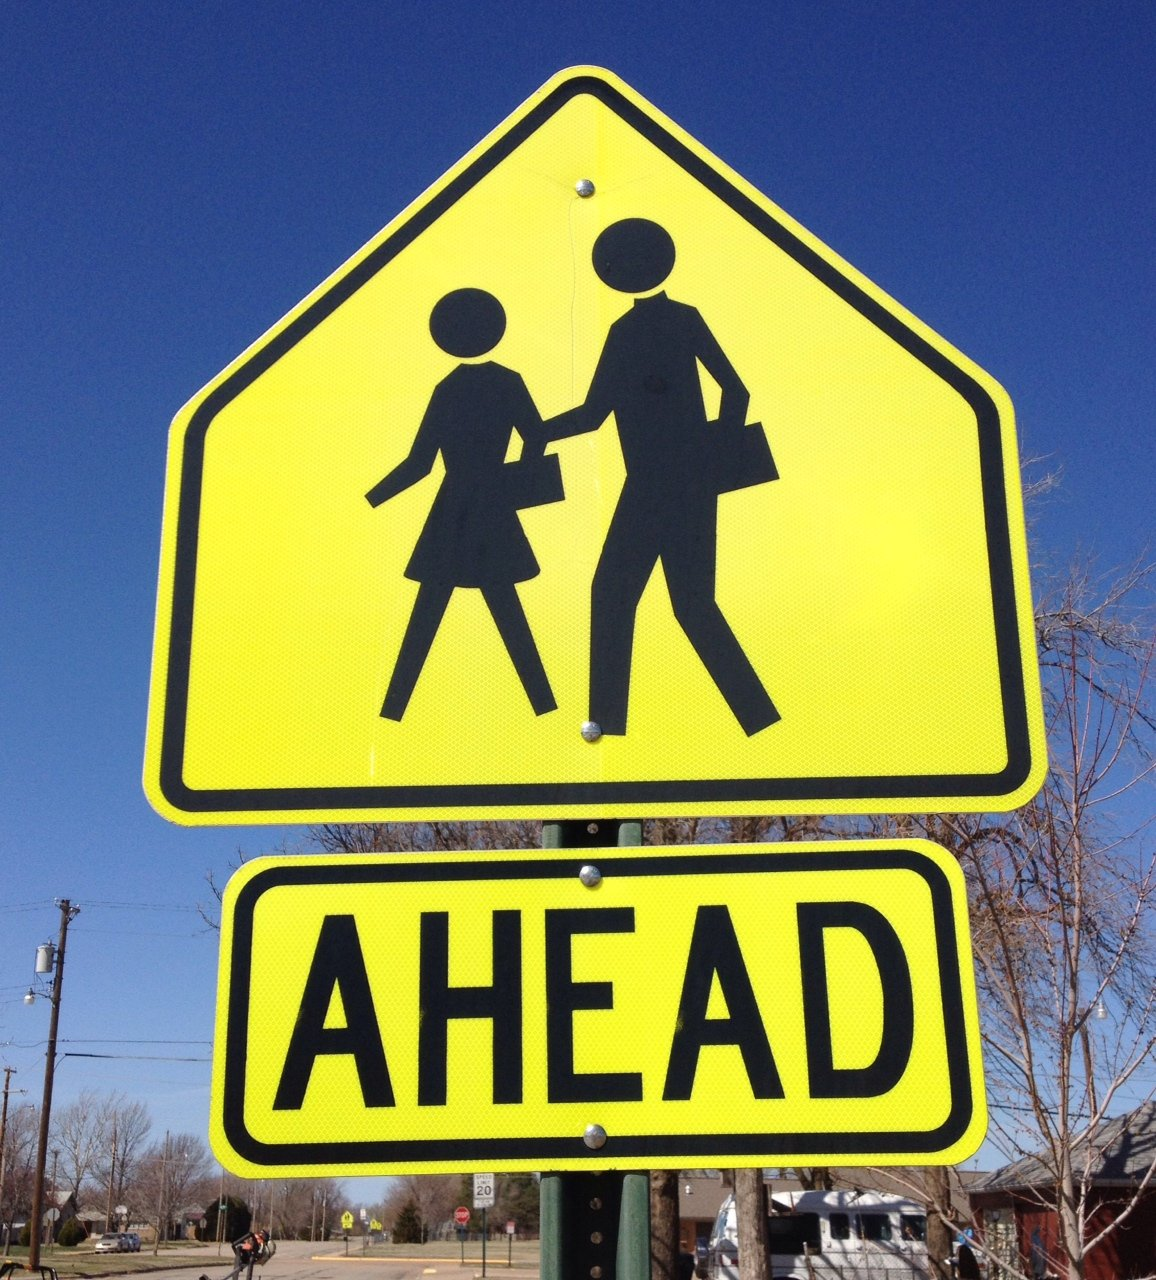 School crossing sign (Photo by J. Schafer)